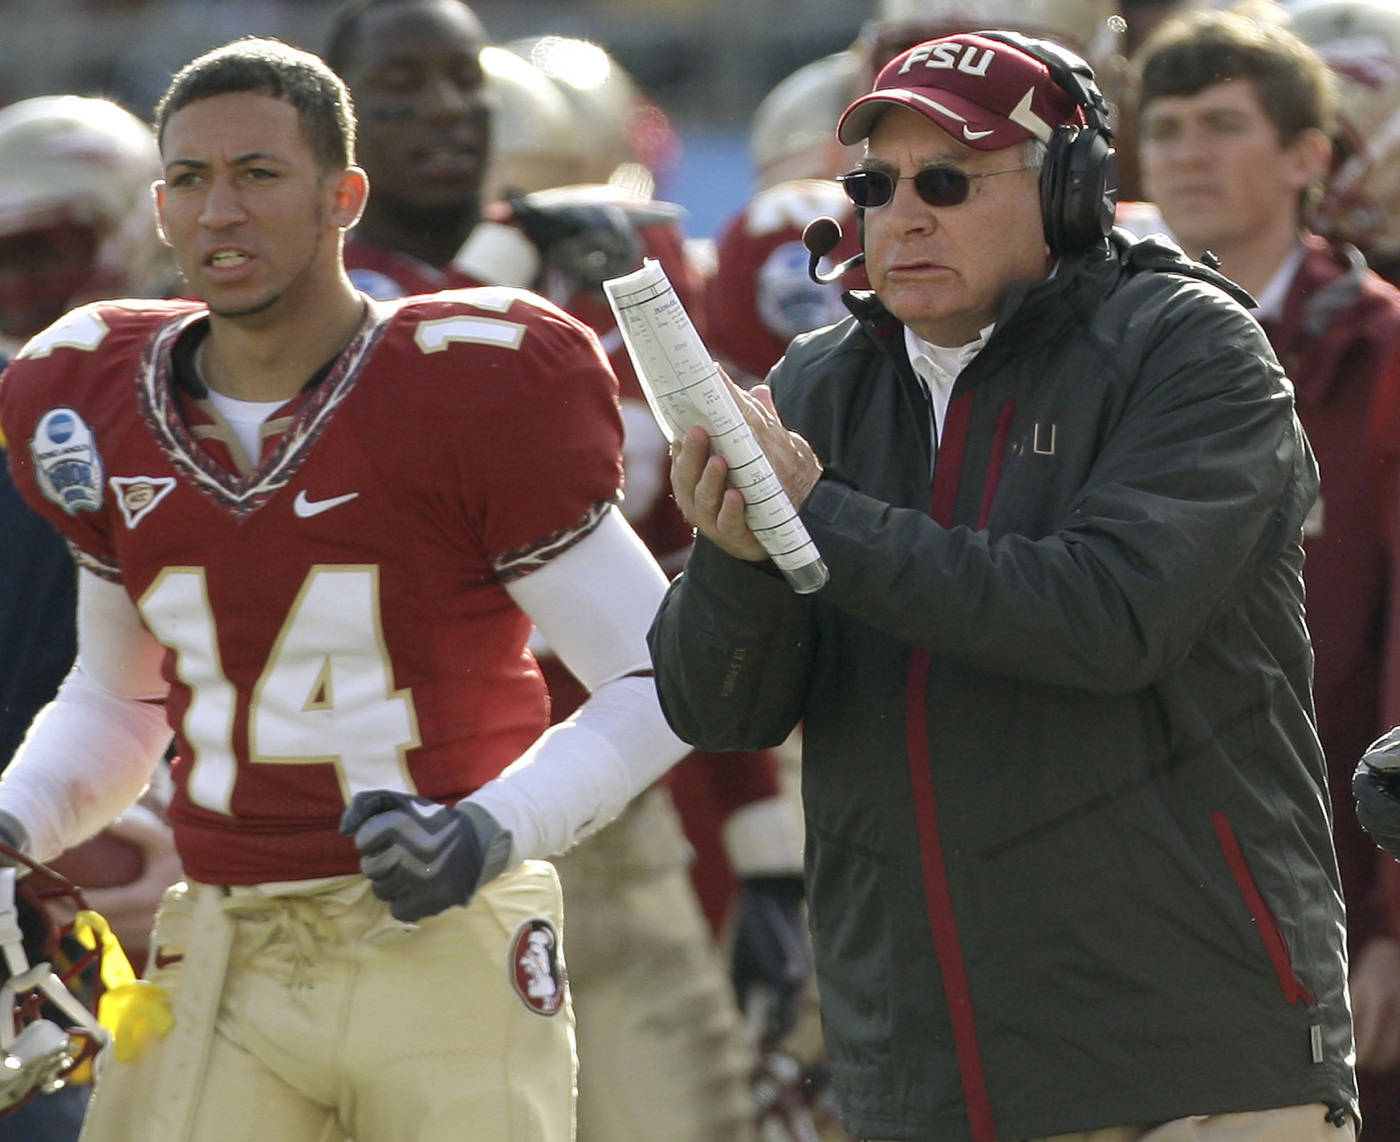 Florida State defensive coordinator Mickey Andrews, right, applauds his defense during the third quarter of the Gator Bowl NCAA college football game against West Virginia, Friday, Jan. 1, 2010, in Jacksonville, Fla.  Florida State won 33-21.(AP Photo/Phil Coale)